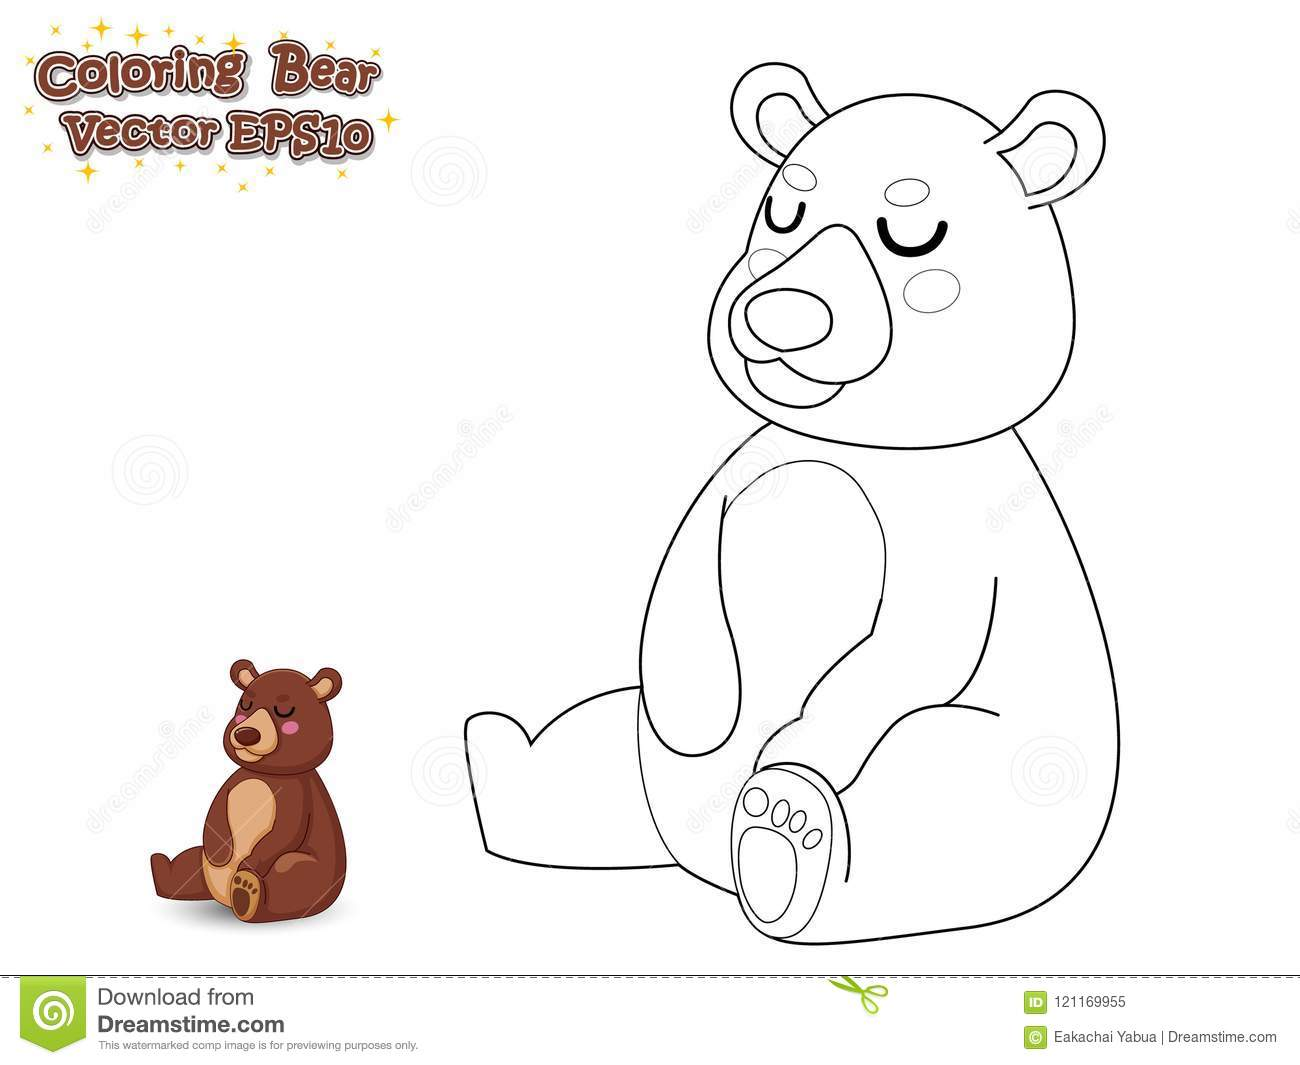 Coloring The Cute Cartoon Bear. Educational Game For Kids ...